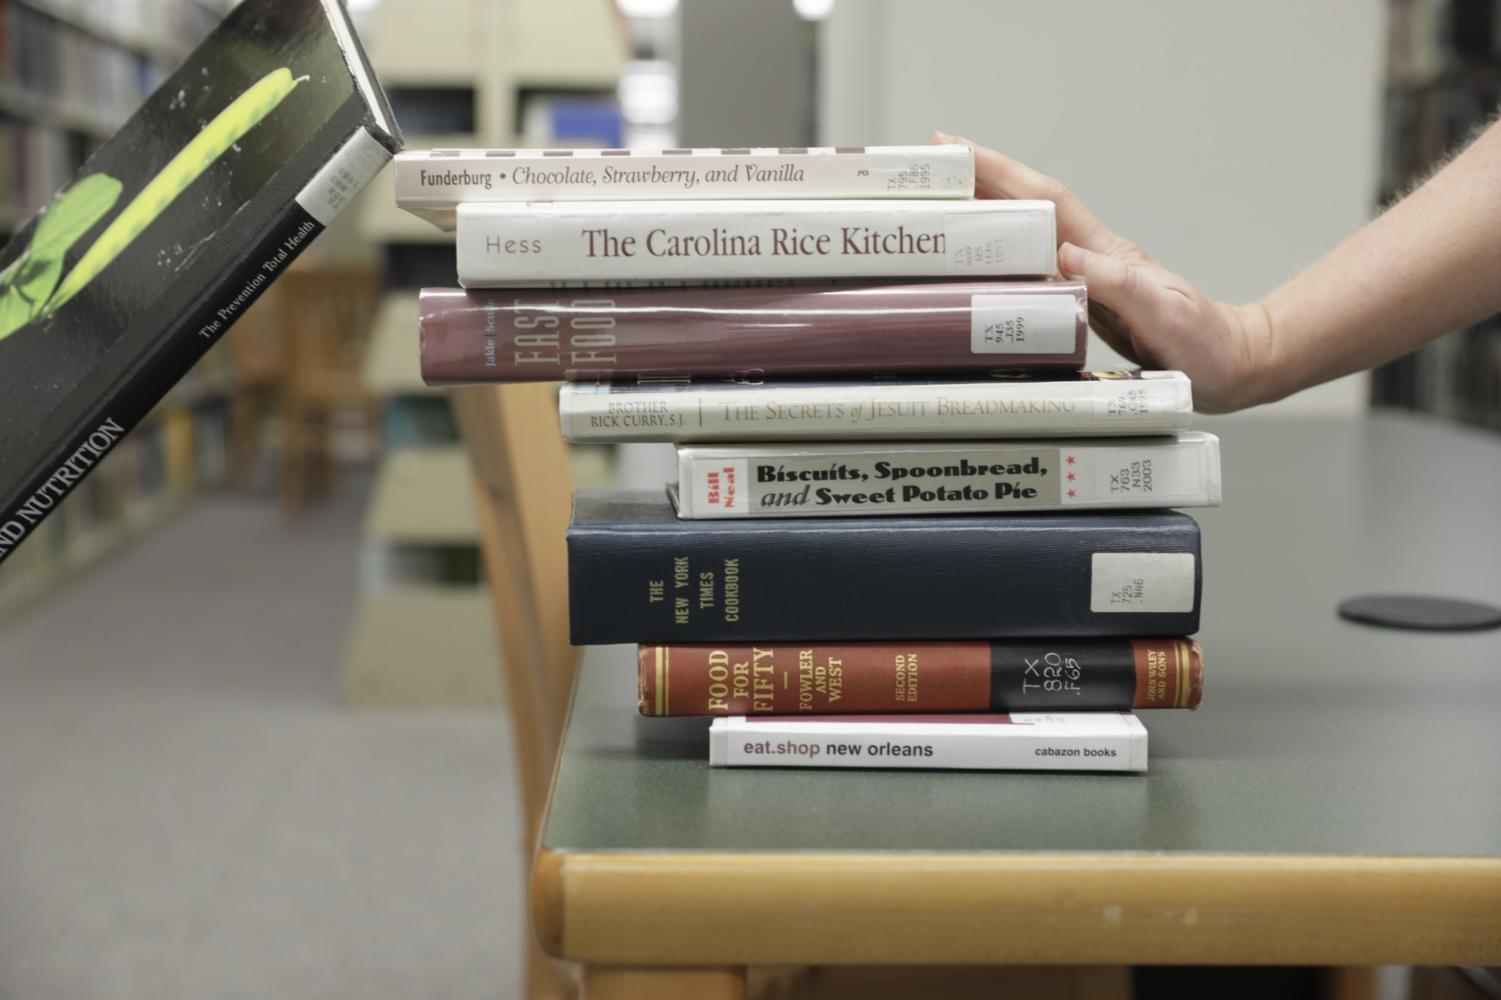 Julia Gollobit, food studies junior, pushes food studies books of a desk in Monroe Library. After its first year in existence, the food studies program was suspended for the 2018-2019 school year and its future remains uncertain. Photo credit: Cristian Orellana